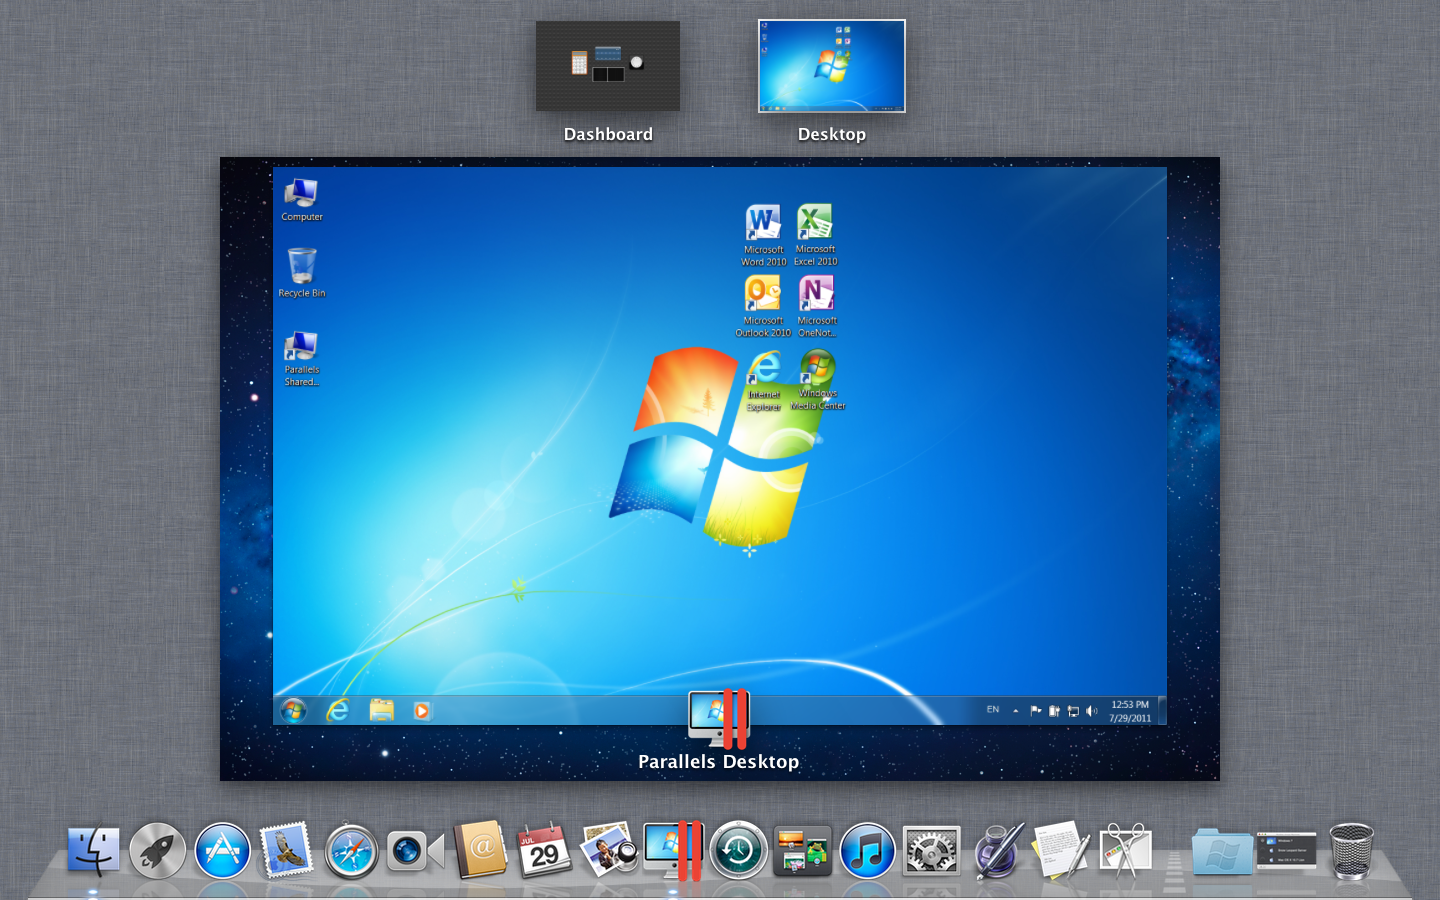 Parallels 7 in full-screen mode.